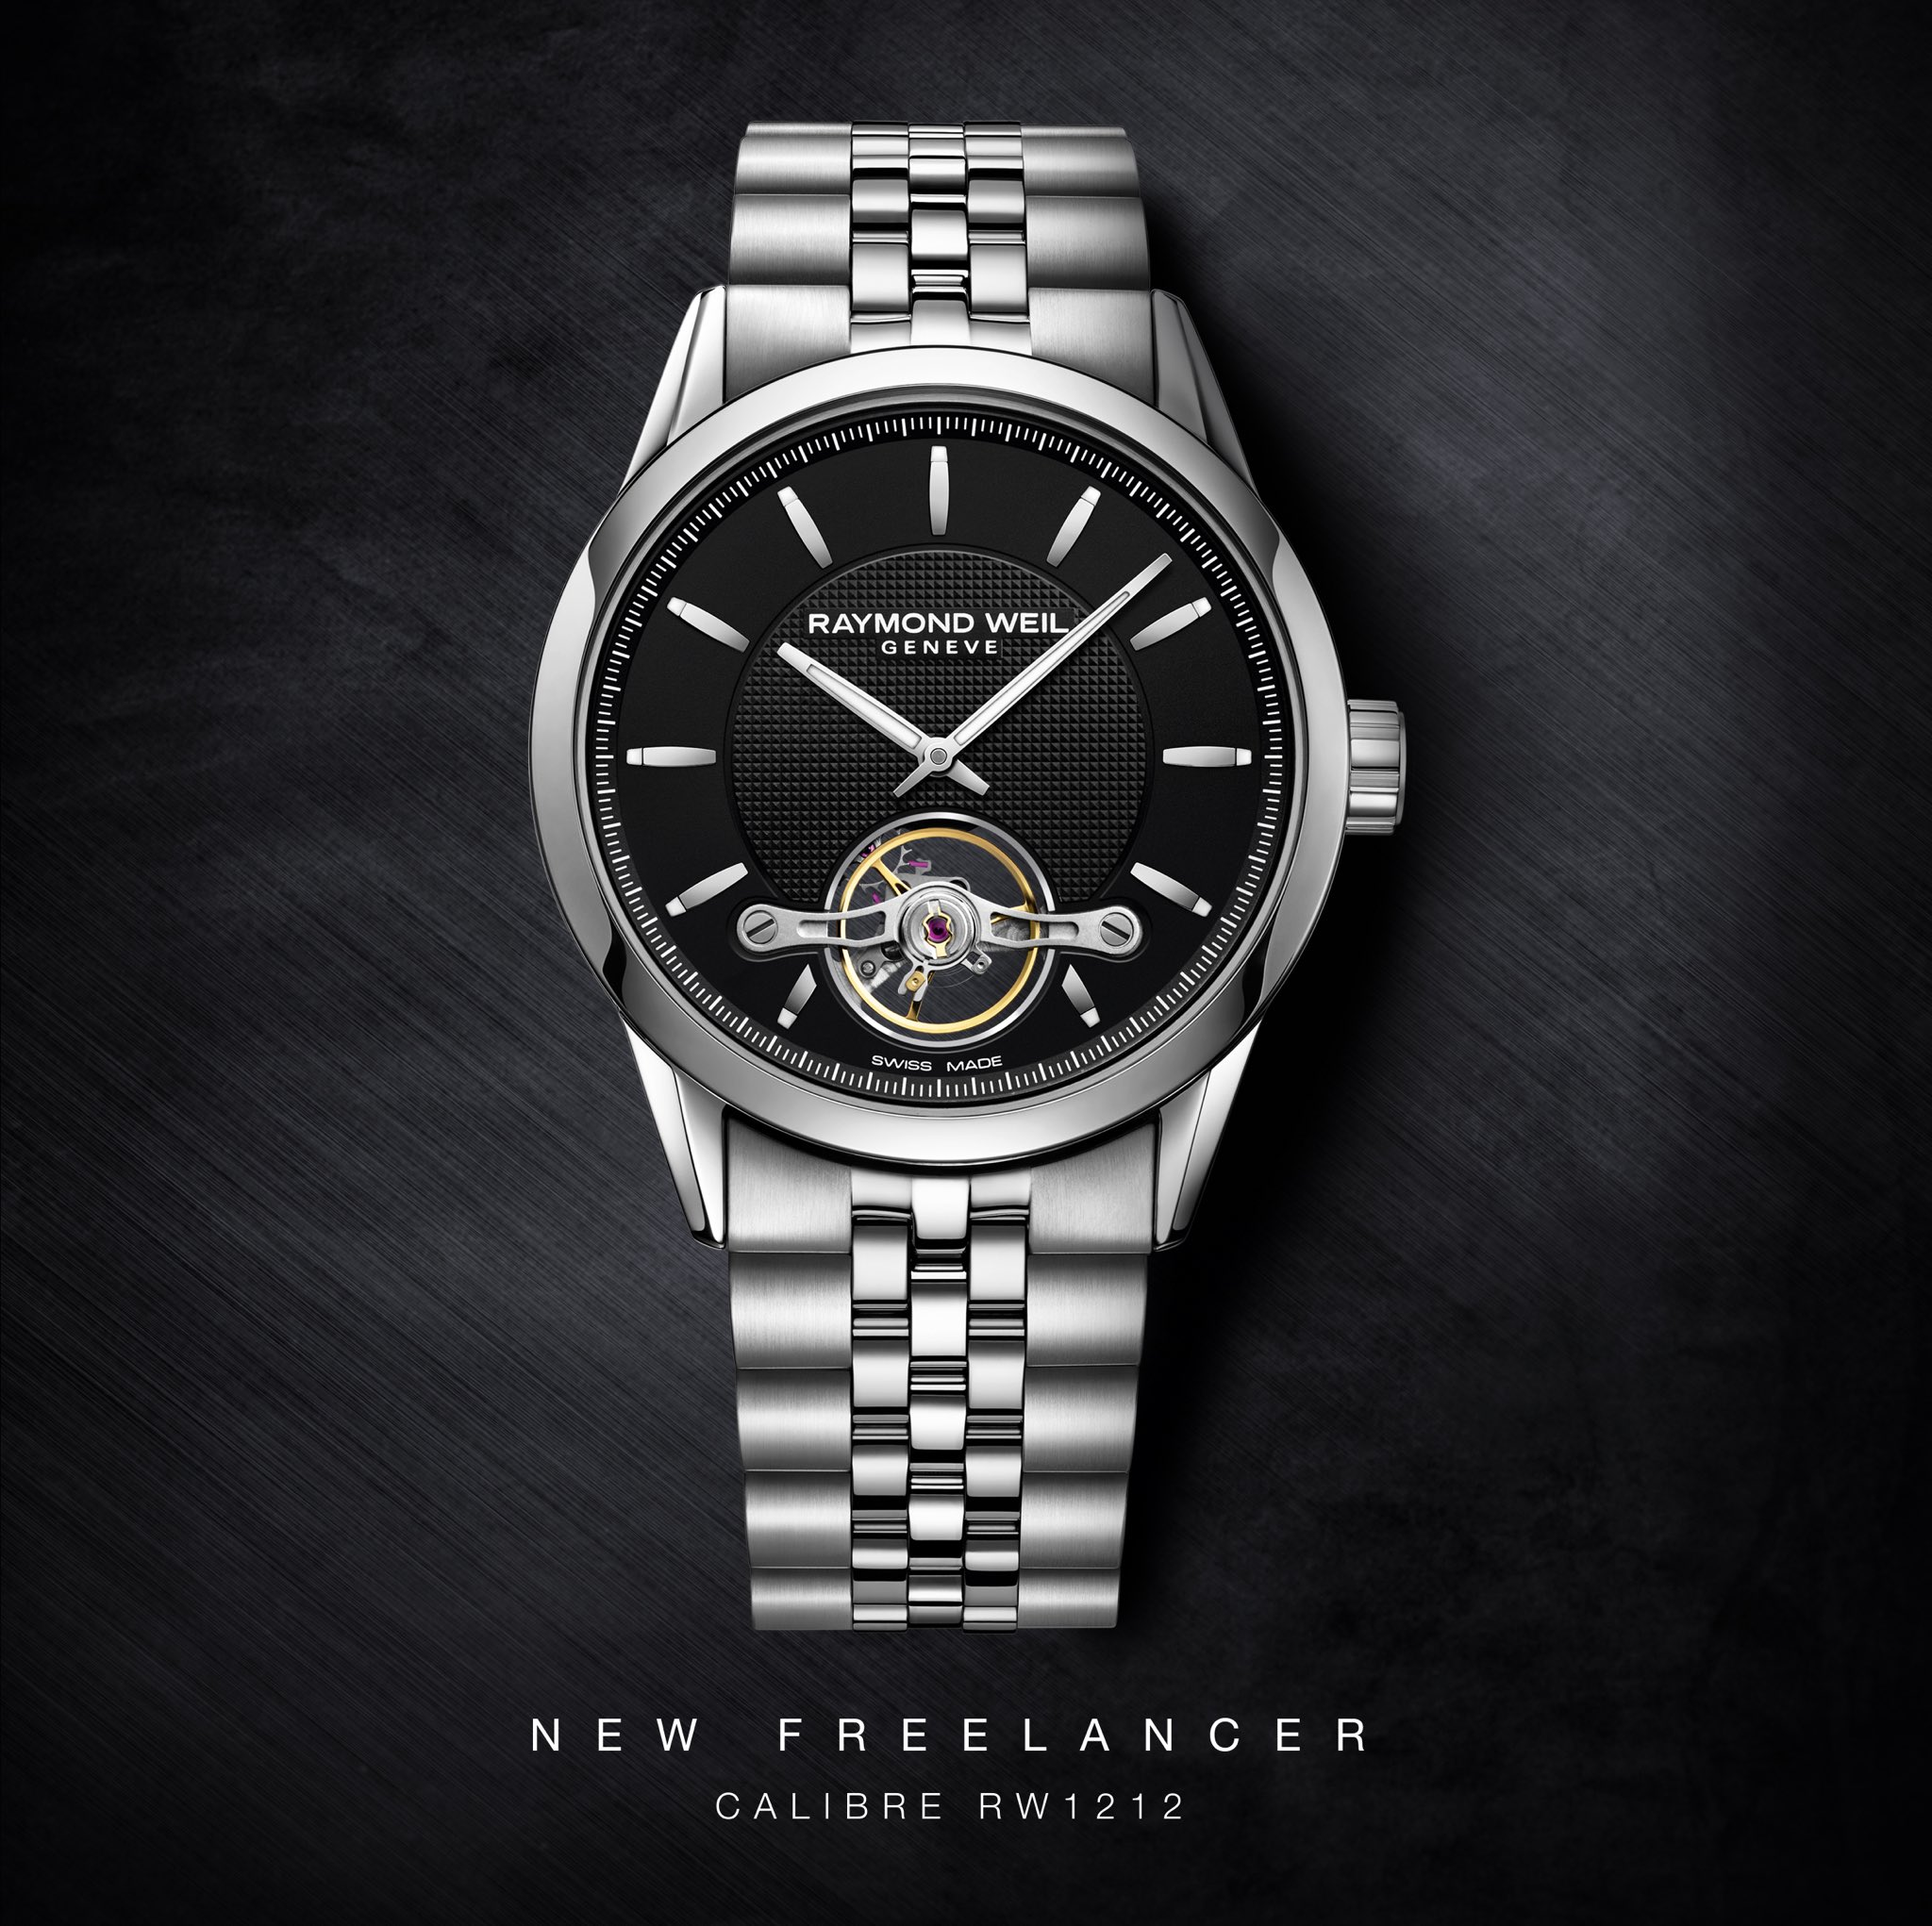 forweb tic weil black en watches freelancer the rw raymond introduces blog piper rvb pkt